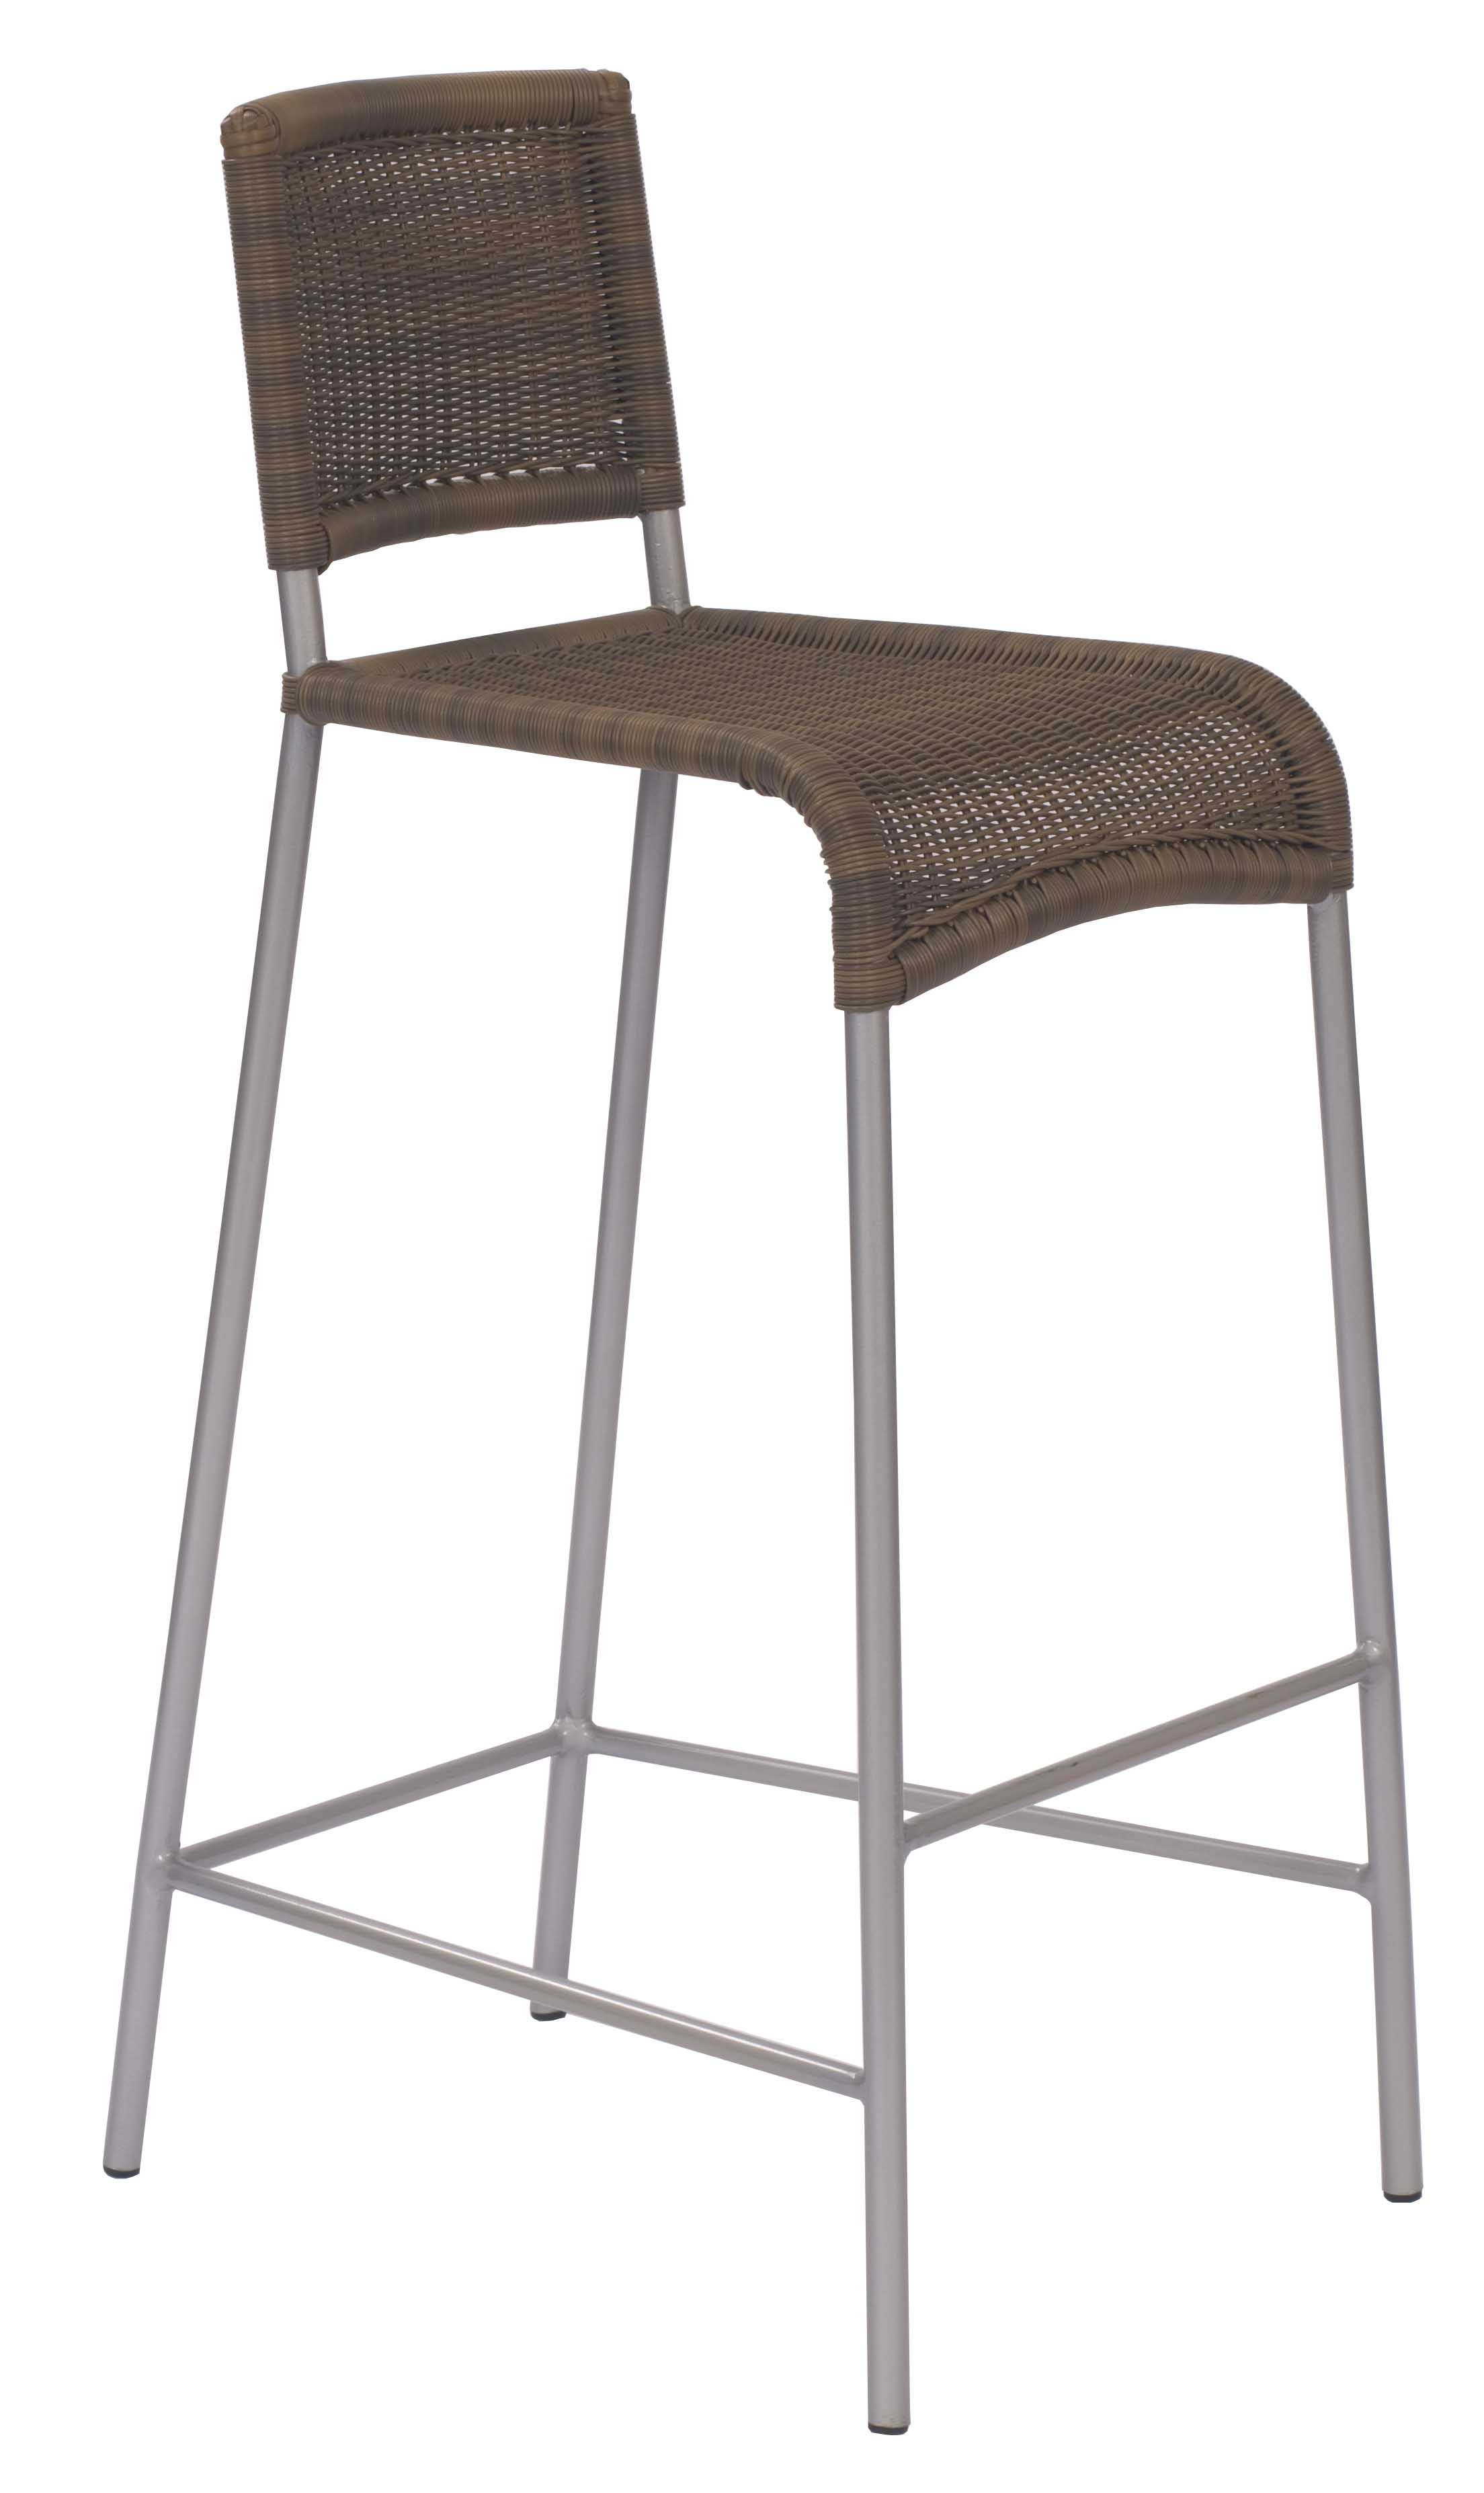 Rattan Rollo Rollo Bar Stool Pr Home